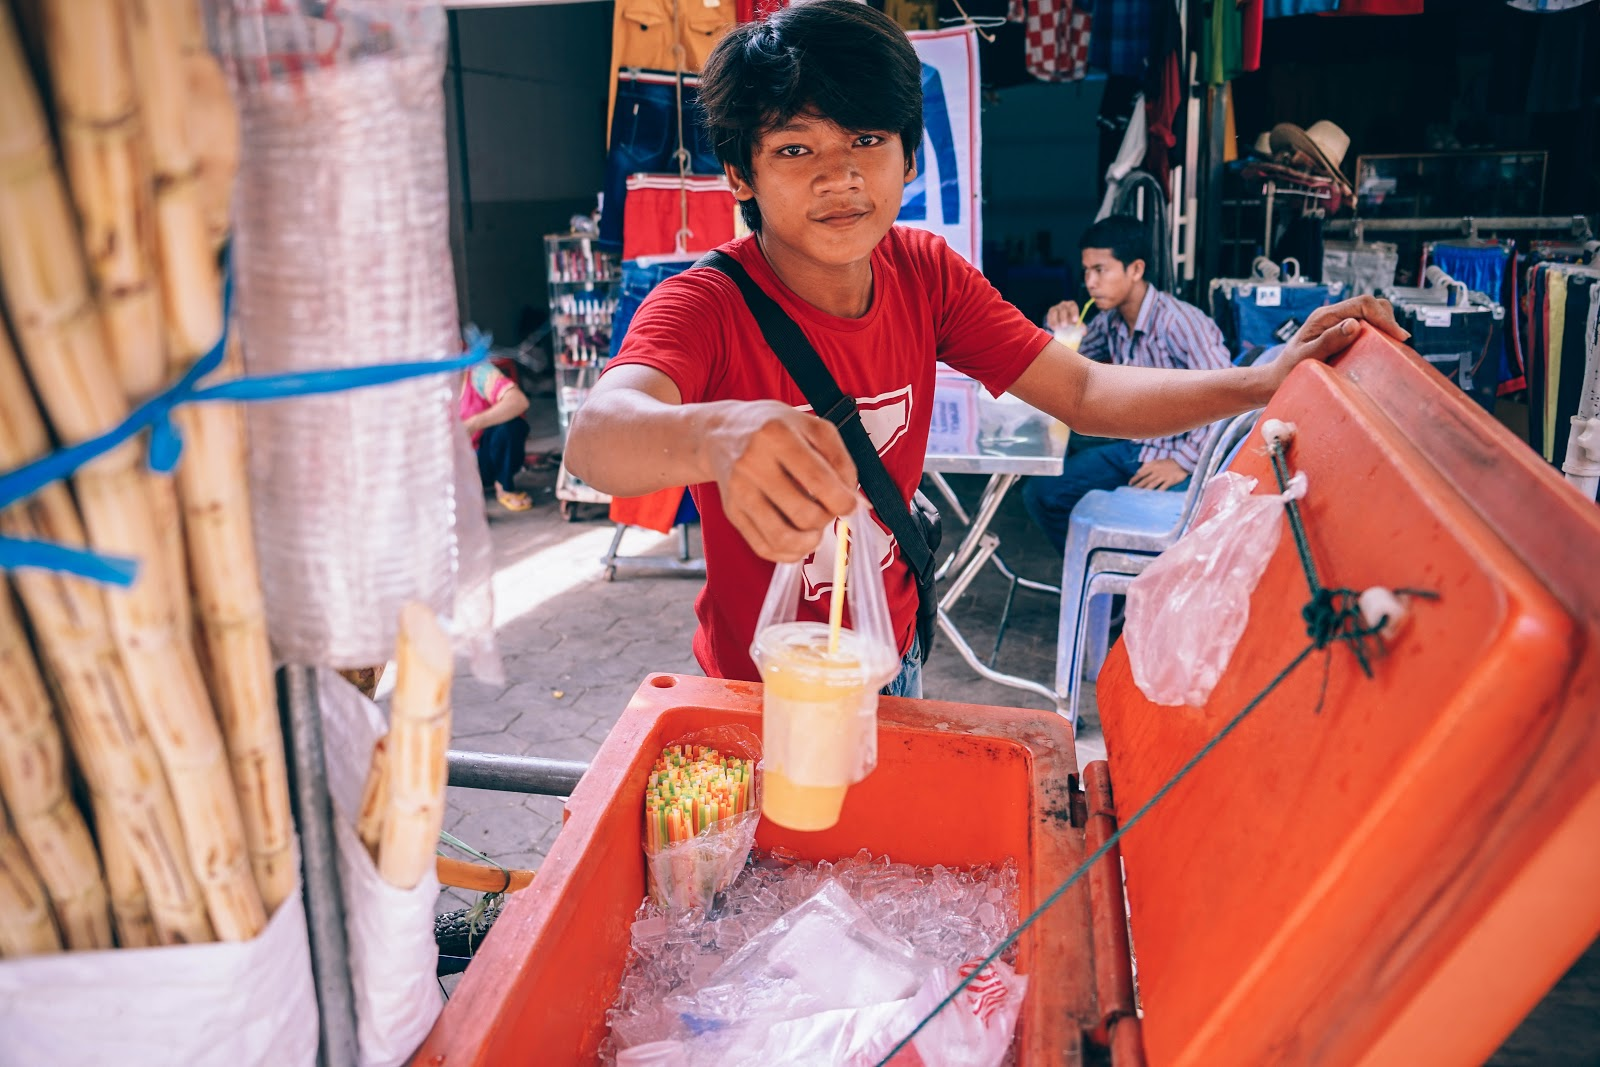 An Asian man passing a plastic cup of drink to the camera,